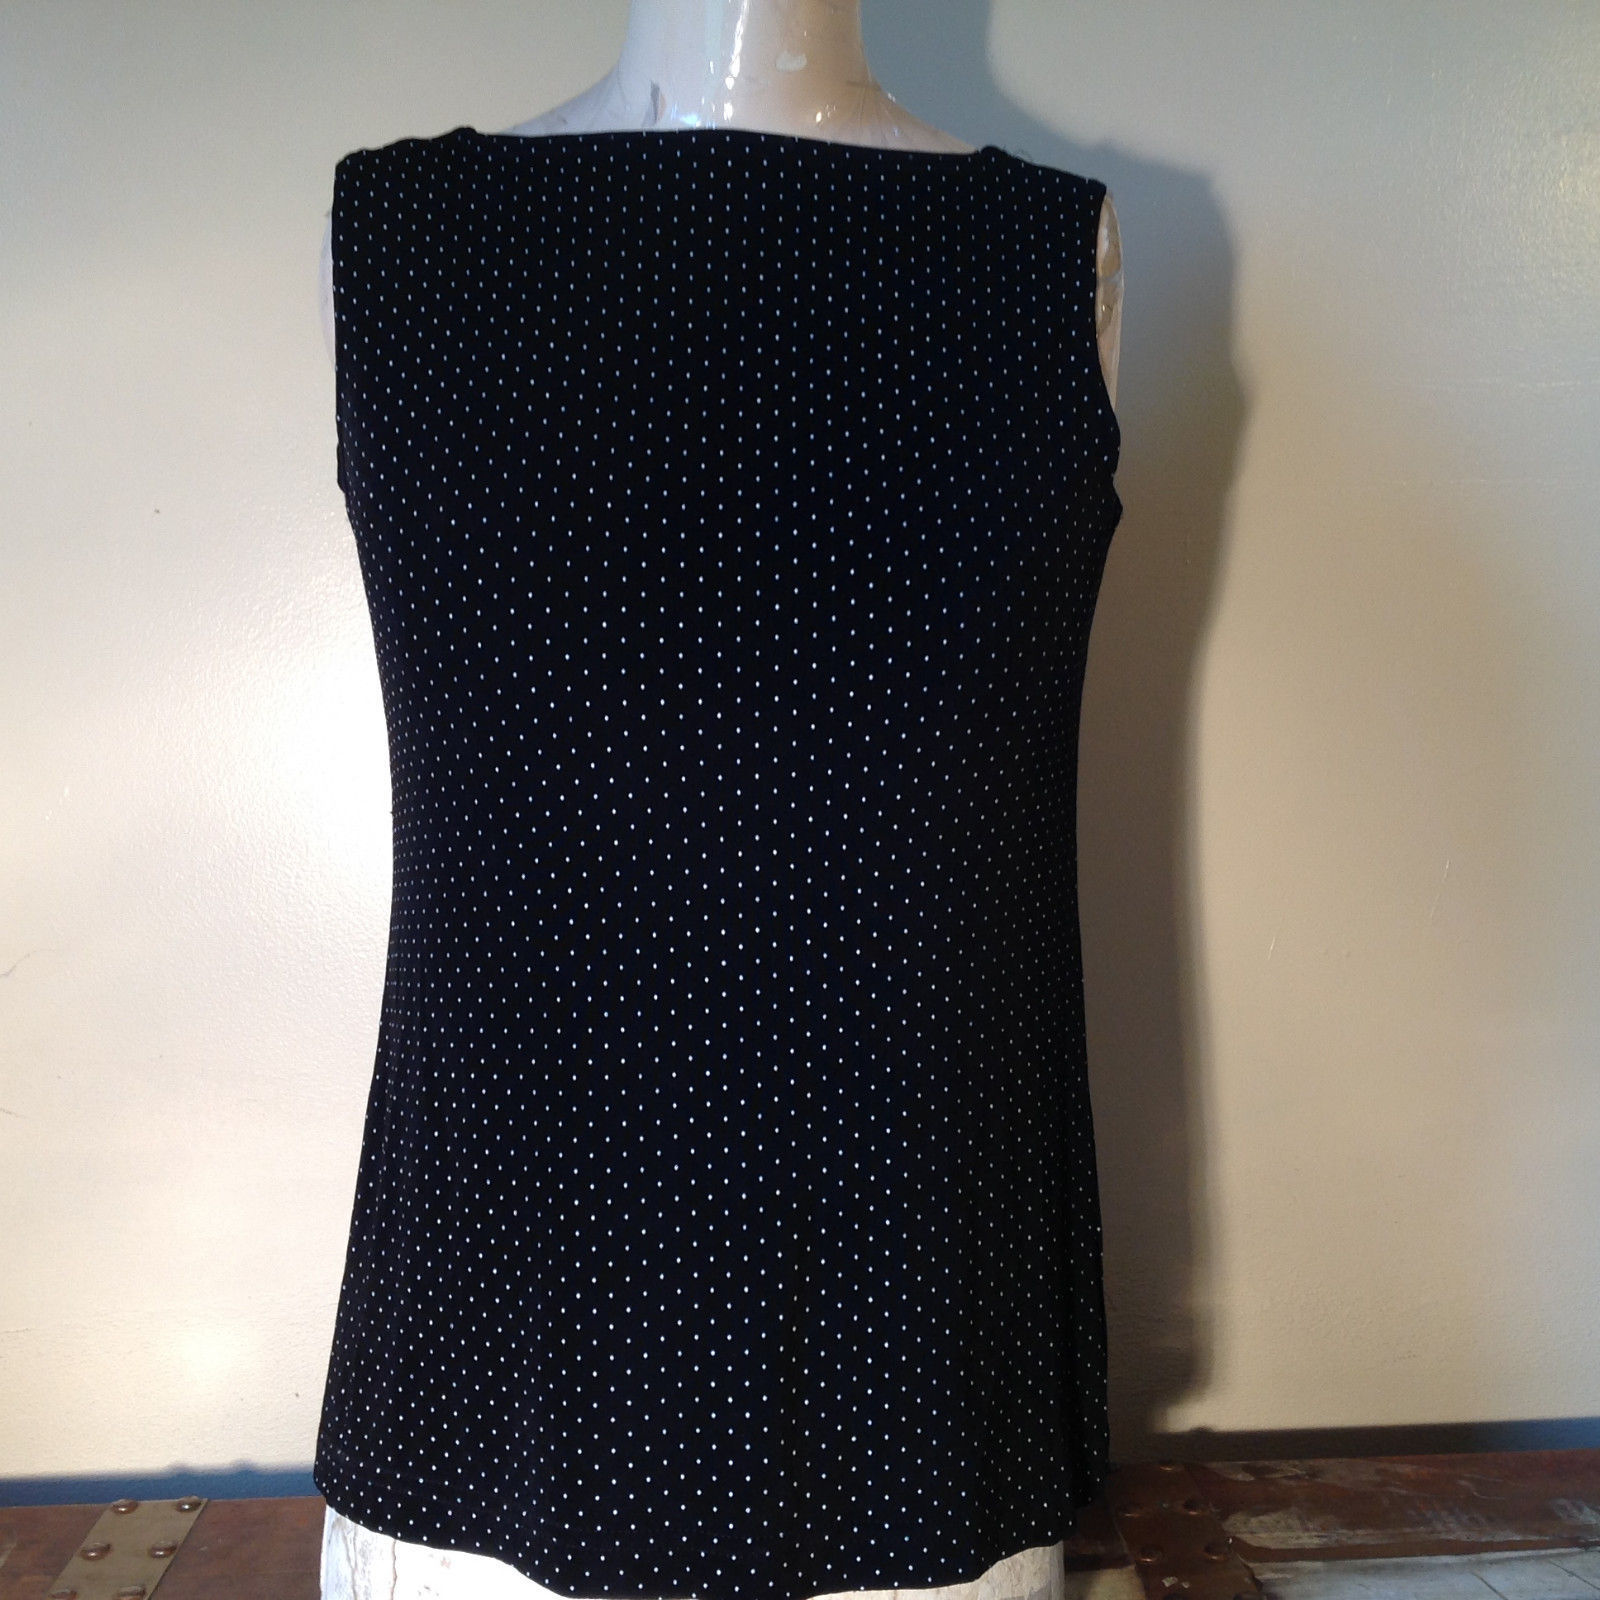 Black with White Dots Dressy Blouse NO TAG Sleeveless See Measurements Below